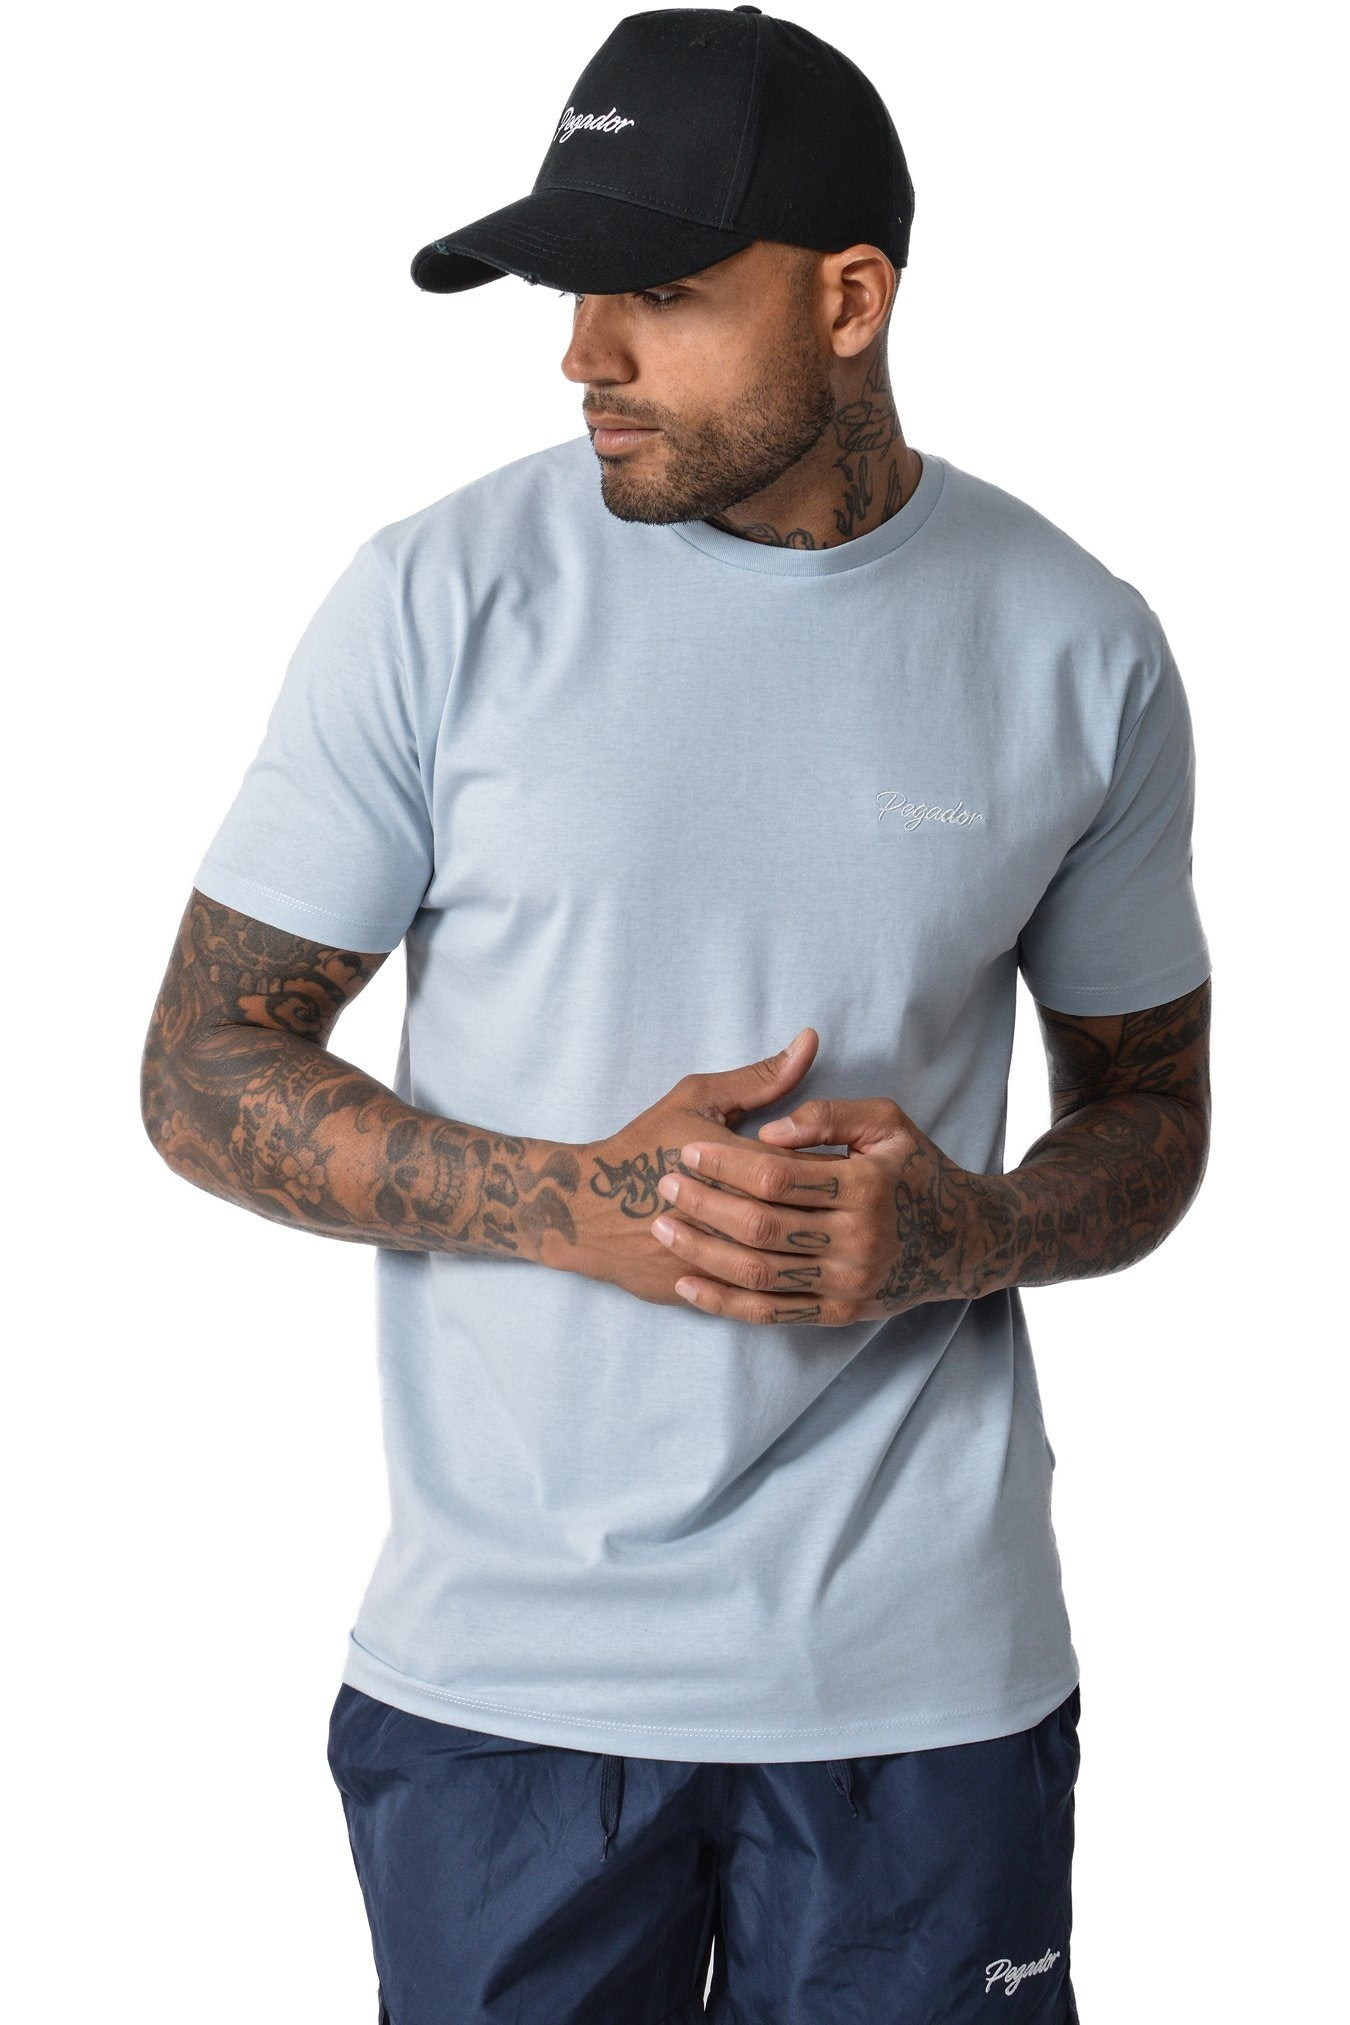 Beo T-Shirt Light Blue - PEGADOR - Dominate the Hype